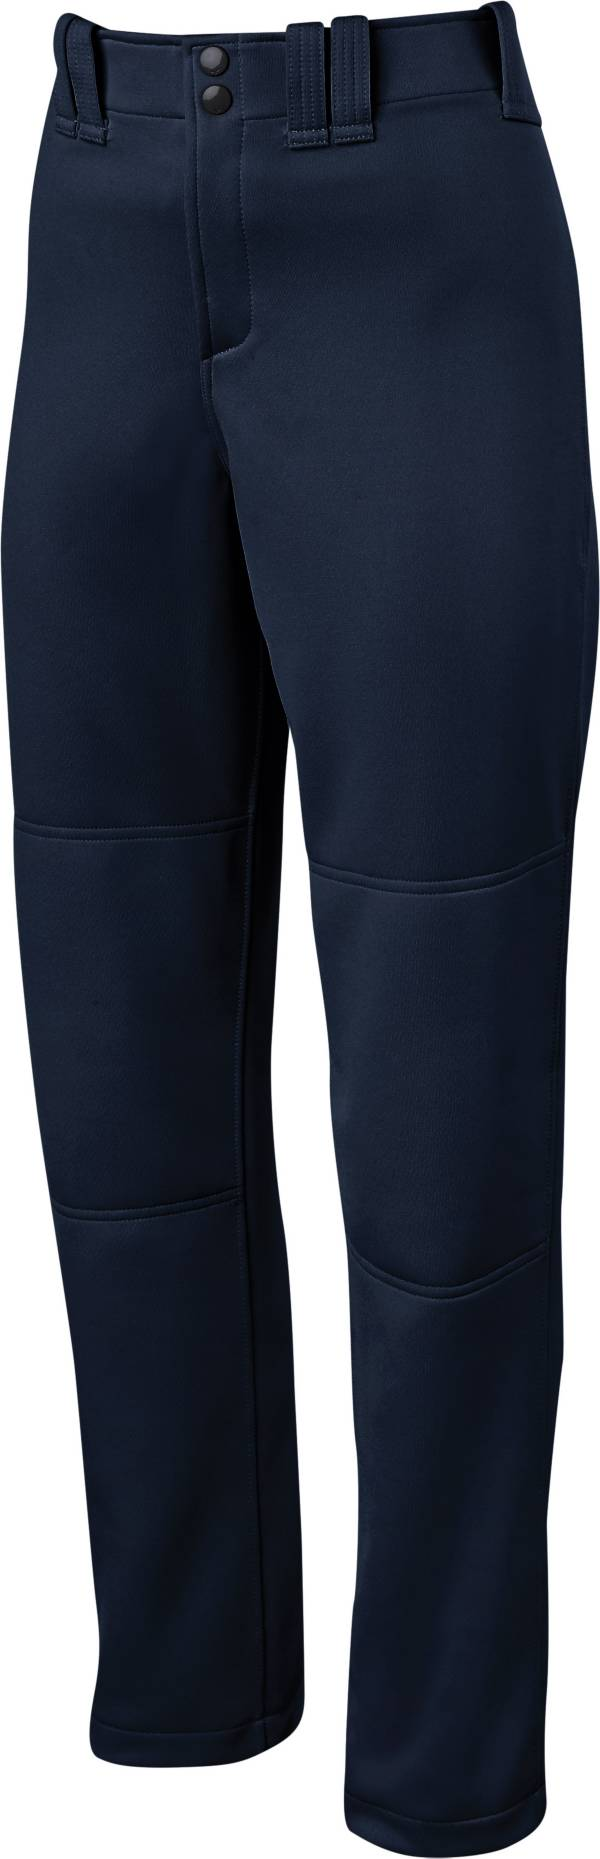 Mizuno Women's Full Length Fastpitch Pants product image